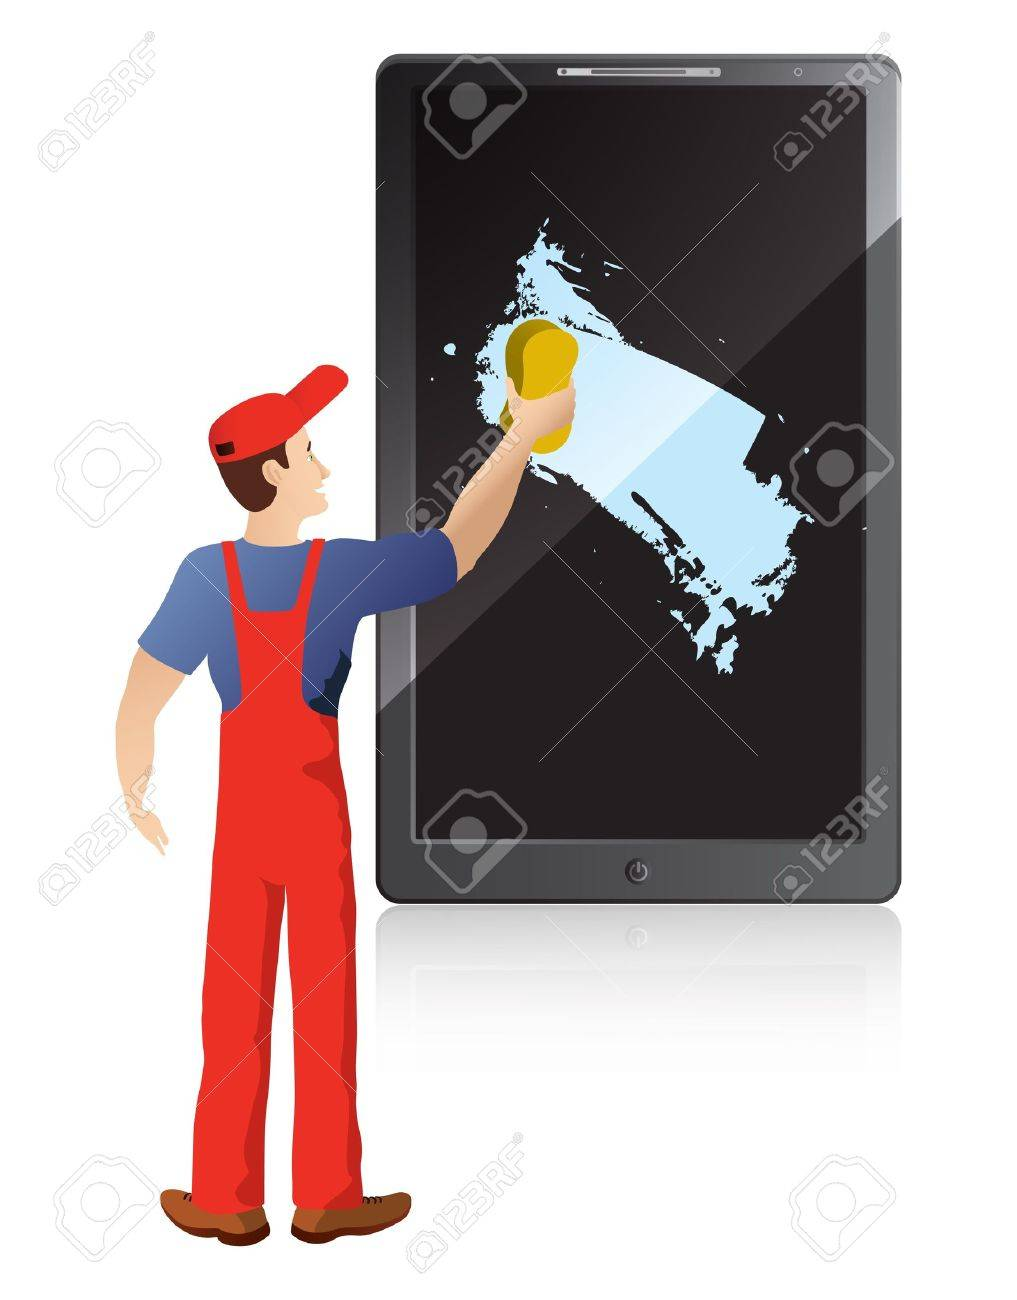 smart worker stock illustrations cliparts and royalty smart worker service worker washing screen of mobile phone